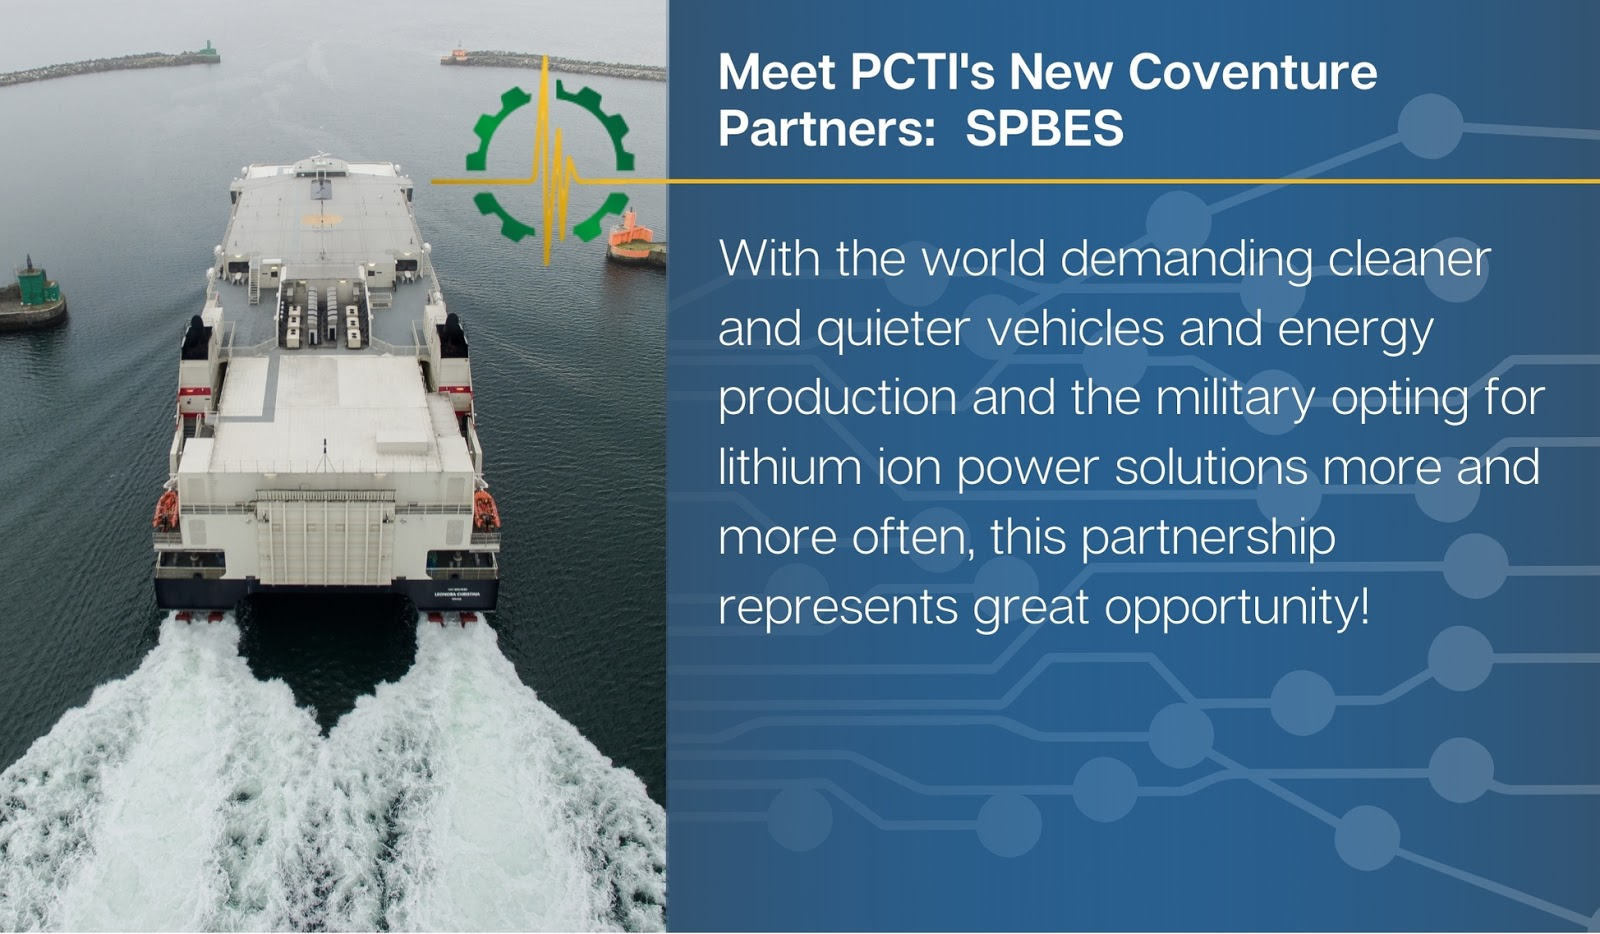 Conventure Partner: SPBES Lithium ion power solutions